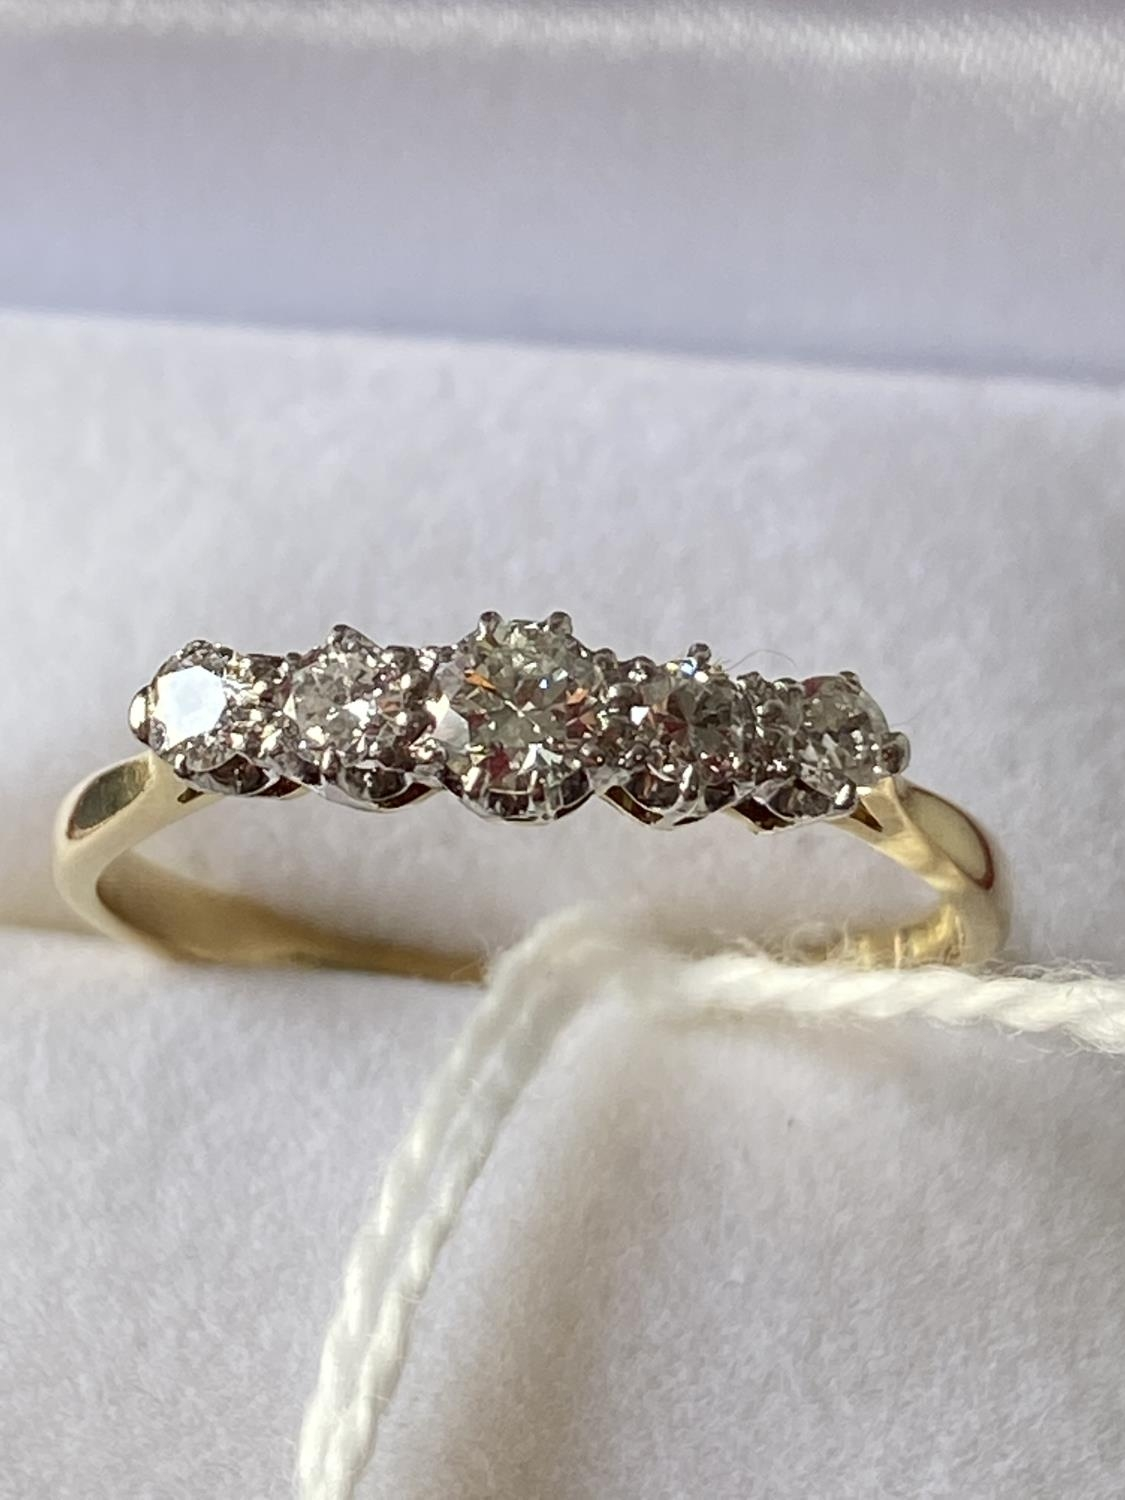 An 18ct gold ladies ring set with 5 brilliant white diamonds [1 inclusion] [size T] [2.73g] - Image 8 of 10